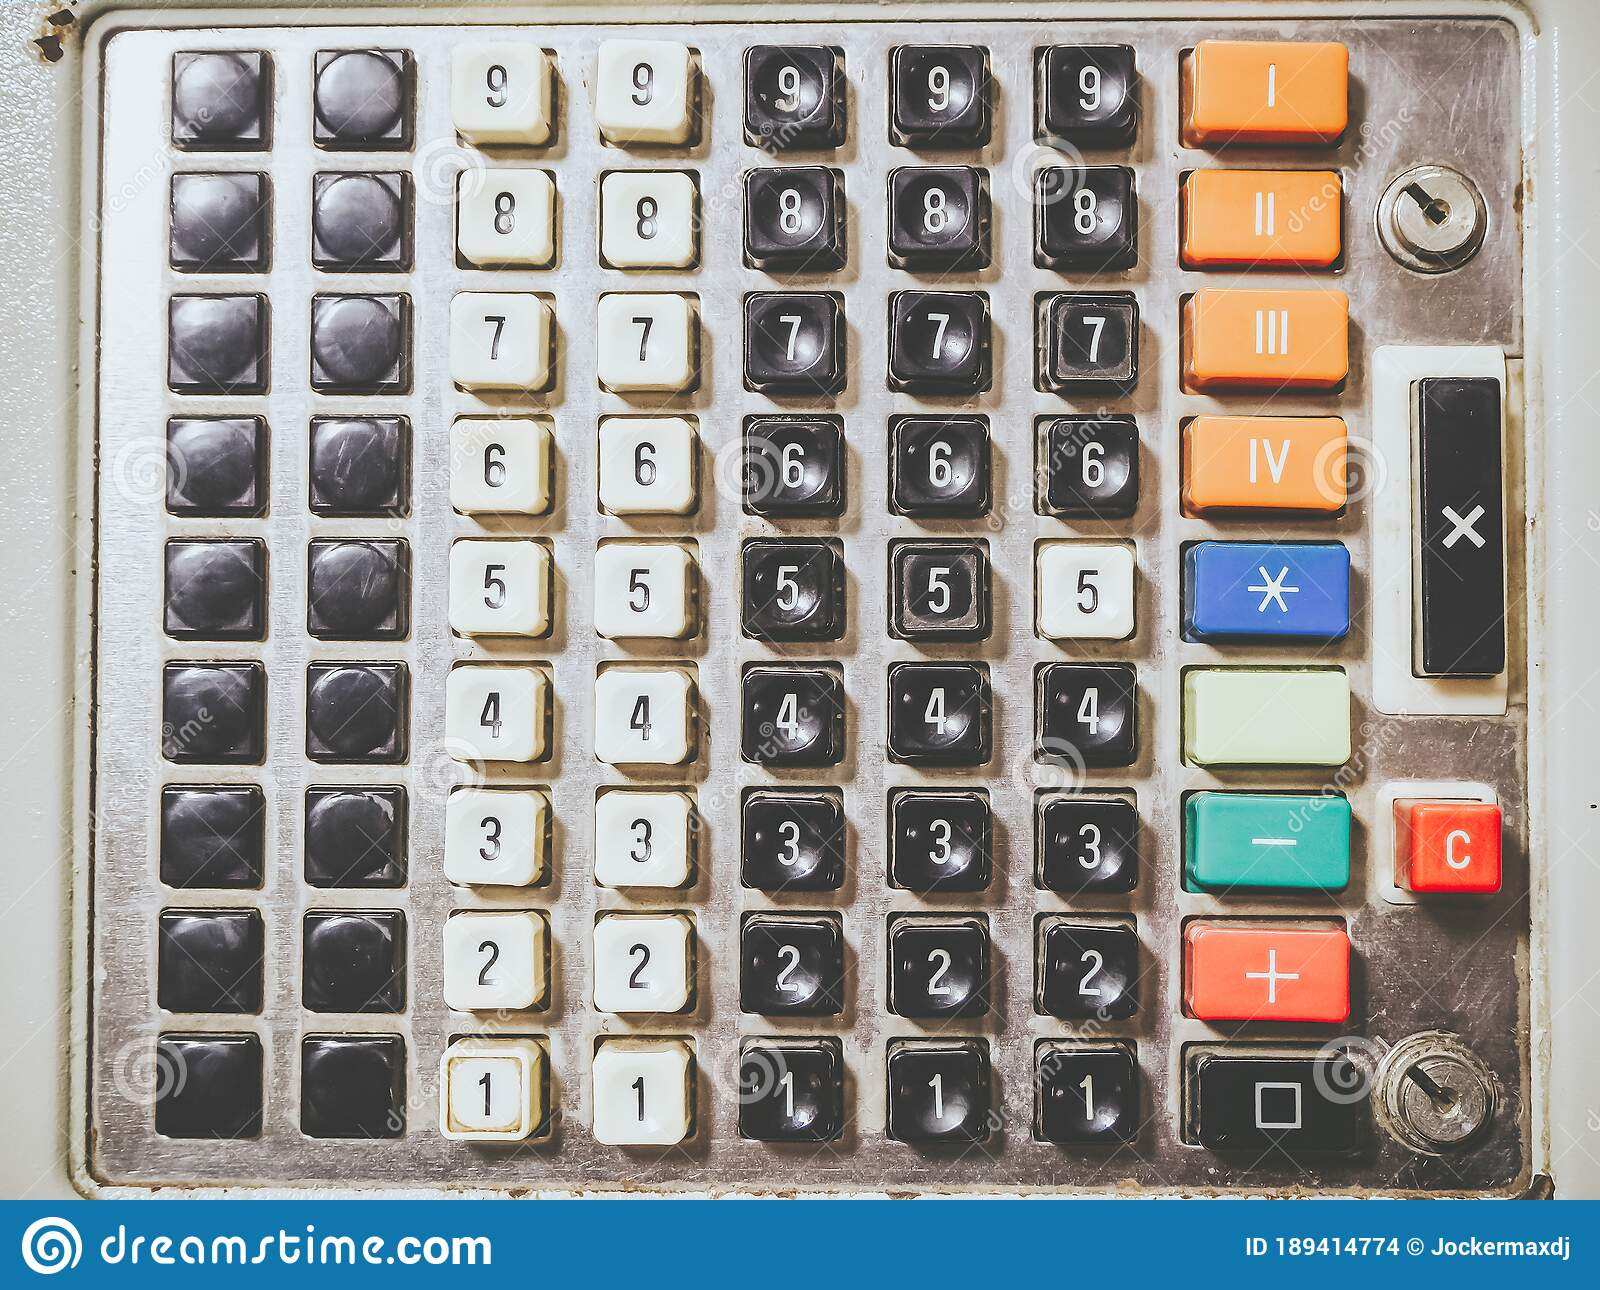 Enter the pertinent info, once entered you'll be in a position to collect the ideal quantity of cash owed to the restaurant or bar. Fragment Of An Old Soviet Cash Register Machine With Buttons With Numbers Full Screen Closeup Photo Stock Photo Image Of Cash Profit 189414774